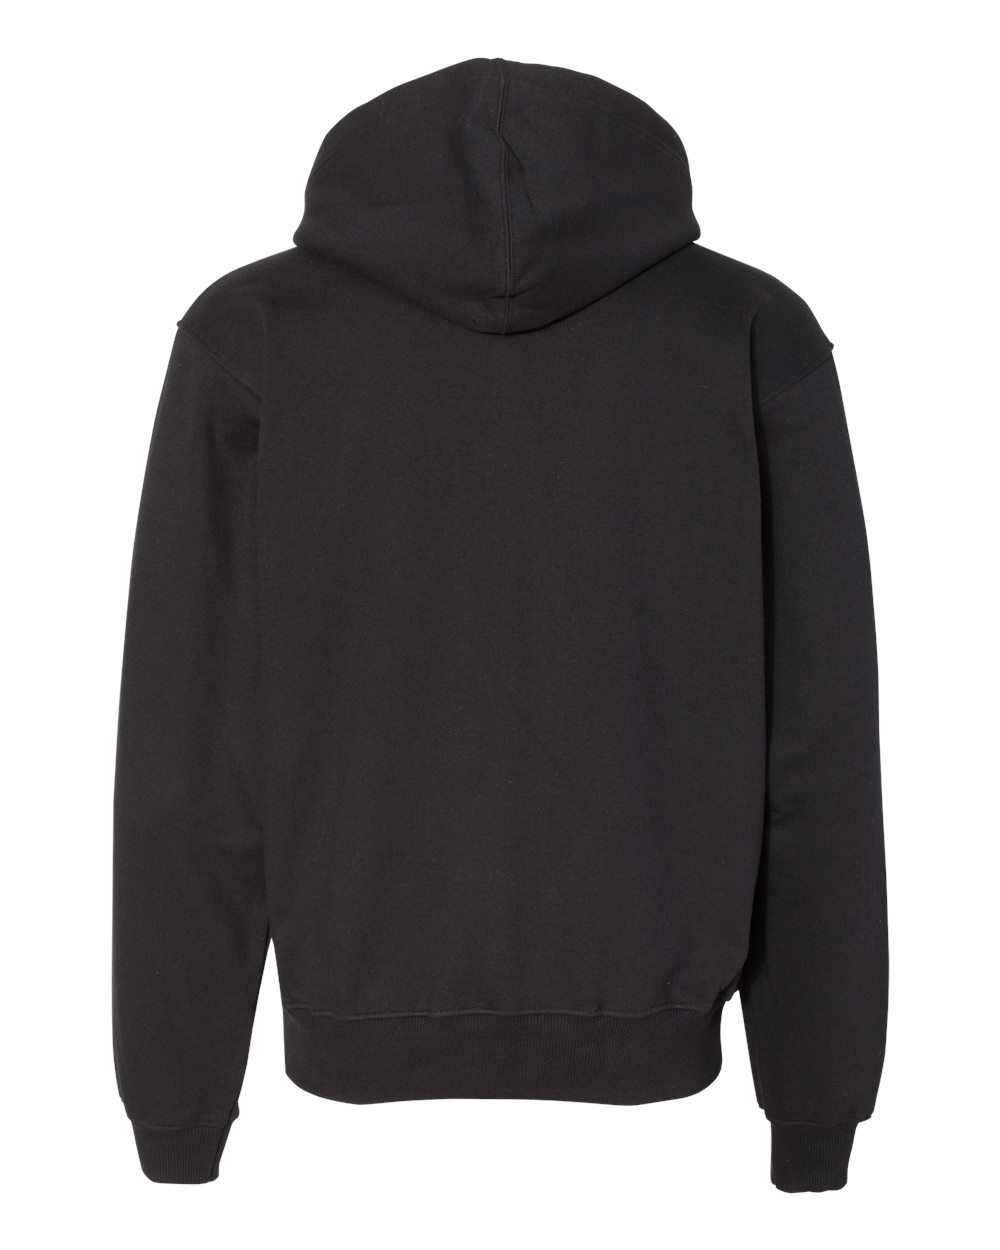 Champion-Mens-Cotton-Max-Hooded-Quarter-Zip-Sweatshirt-Pullover-S185-up-to-3XL miniature 7